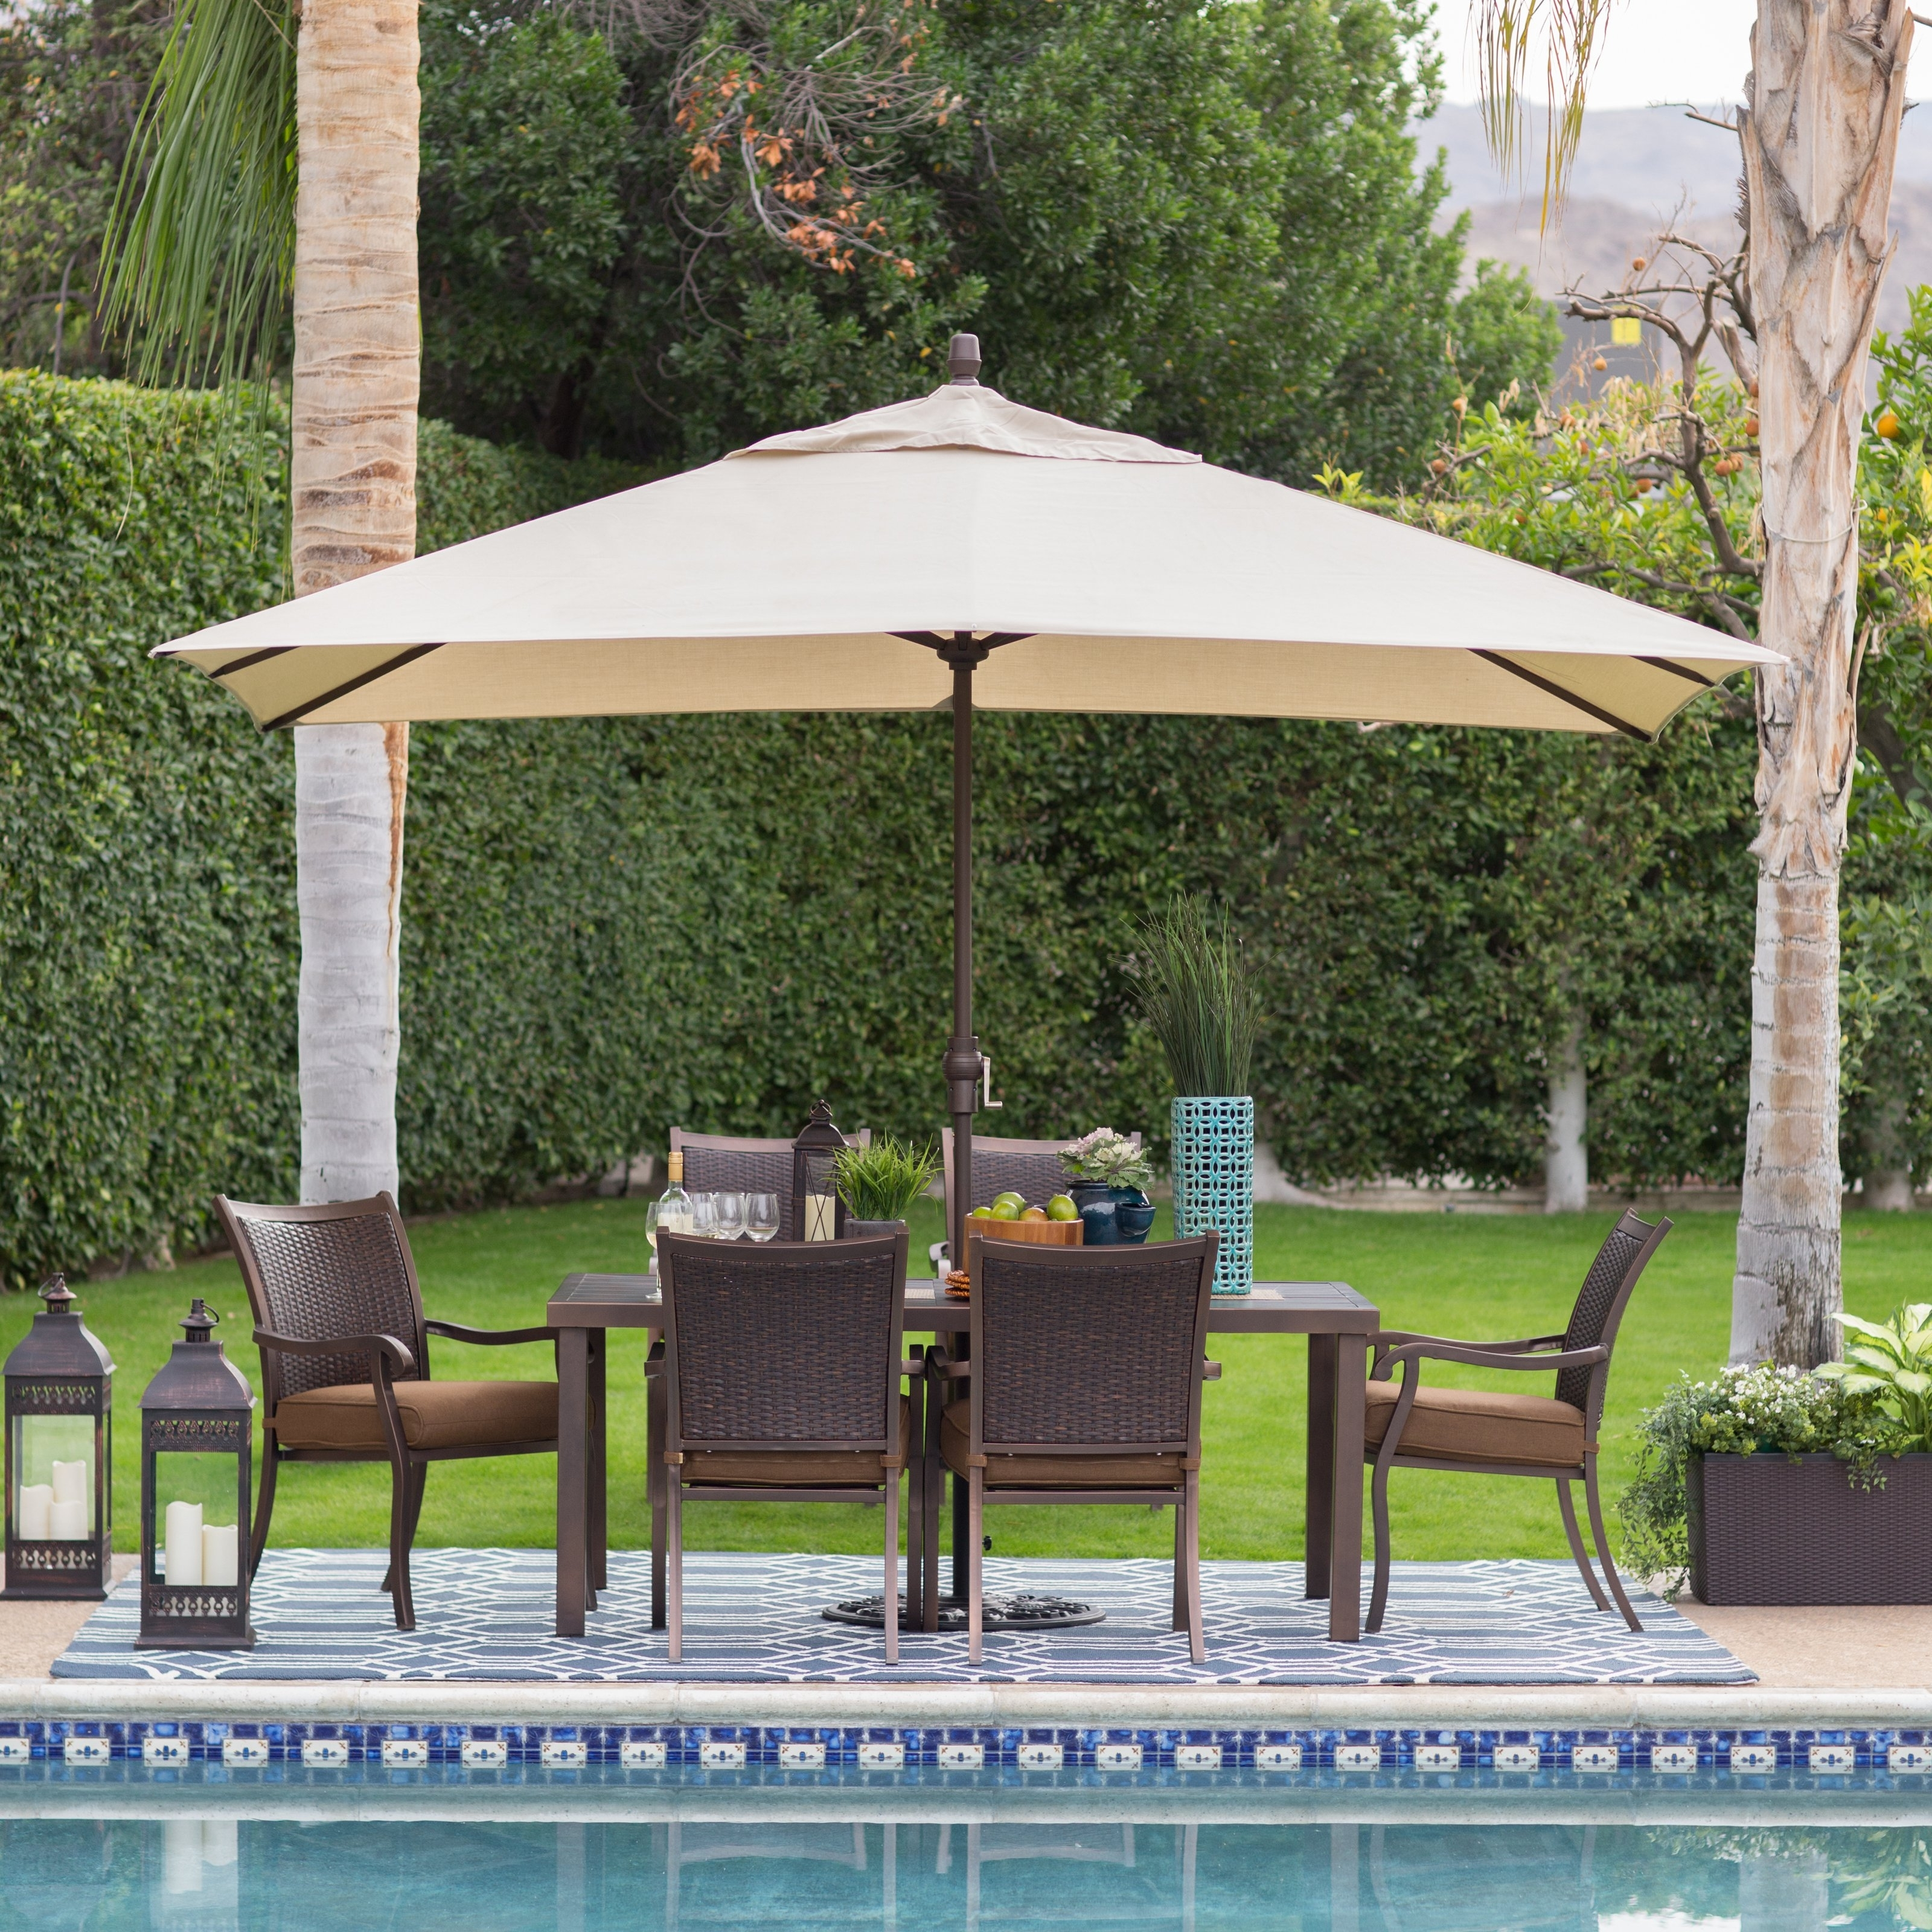 Popular Coral Coast 8 X 11 Ft. Aluminum Spun Poly Rectangle Patio Umbrella For Oversized Patio Umbrellas (Gallery 13 of 20)